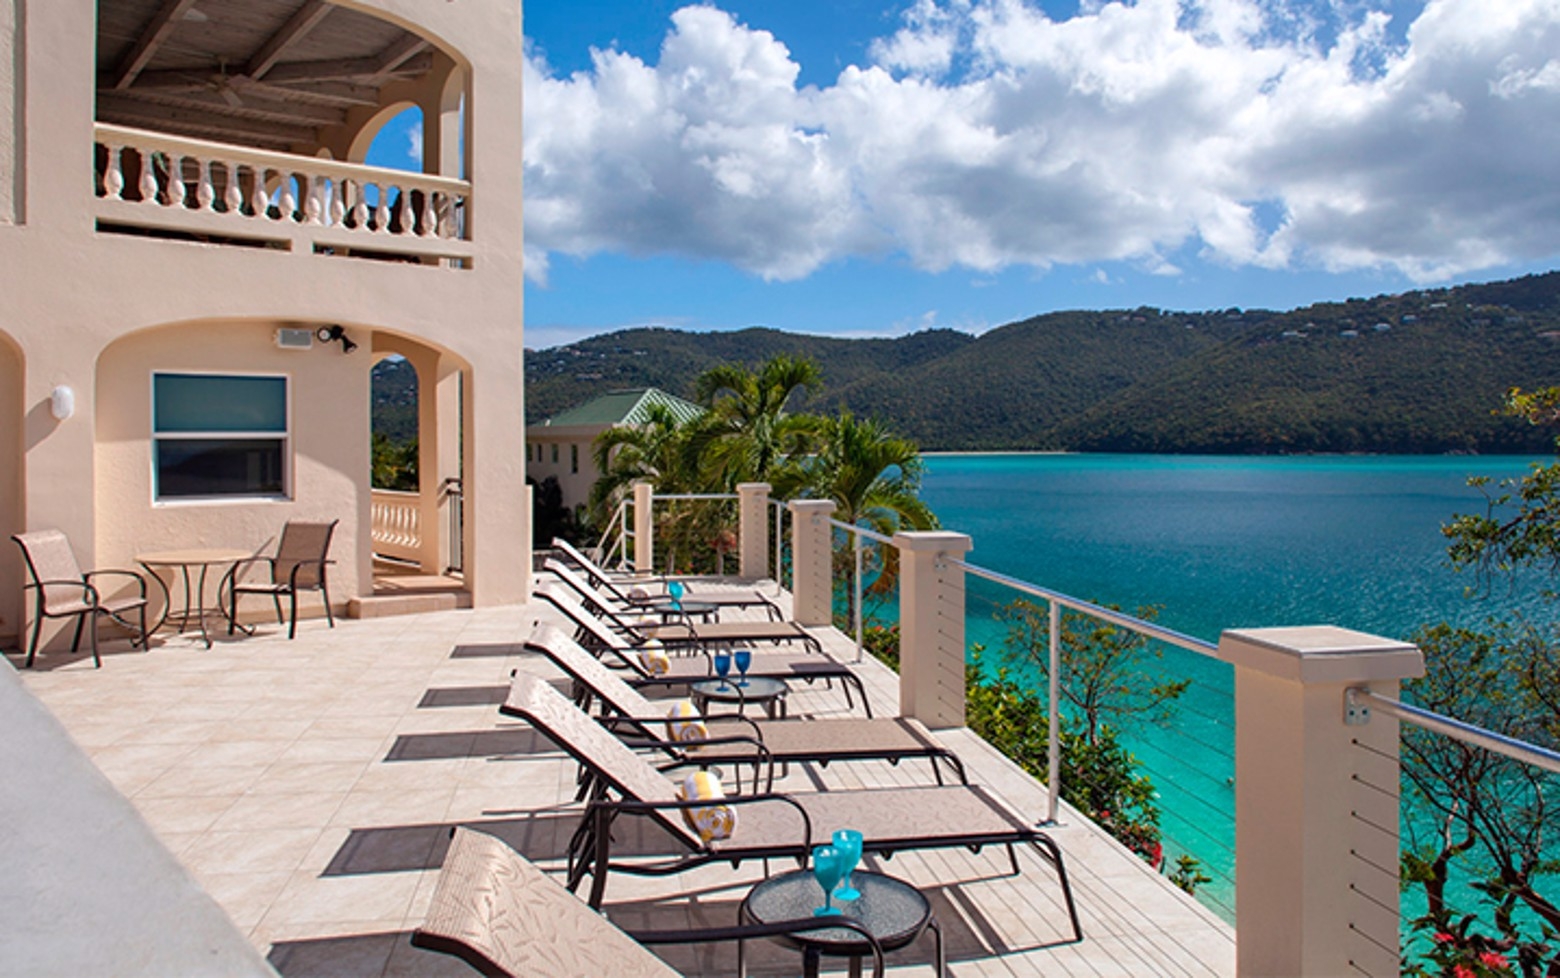 St. Thomas Rental Beach Home image